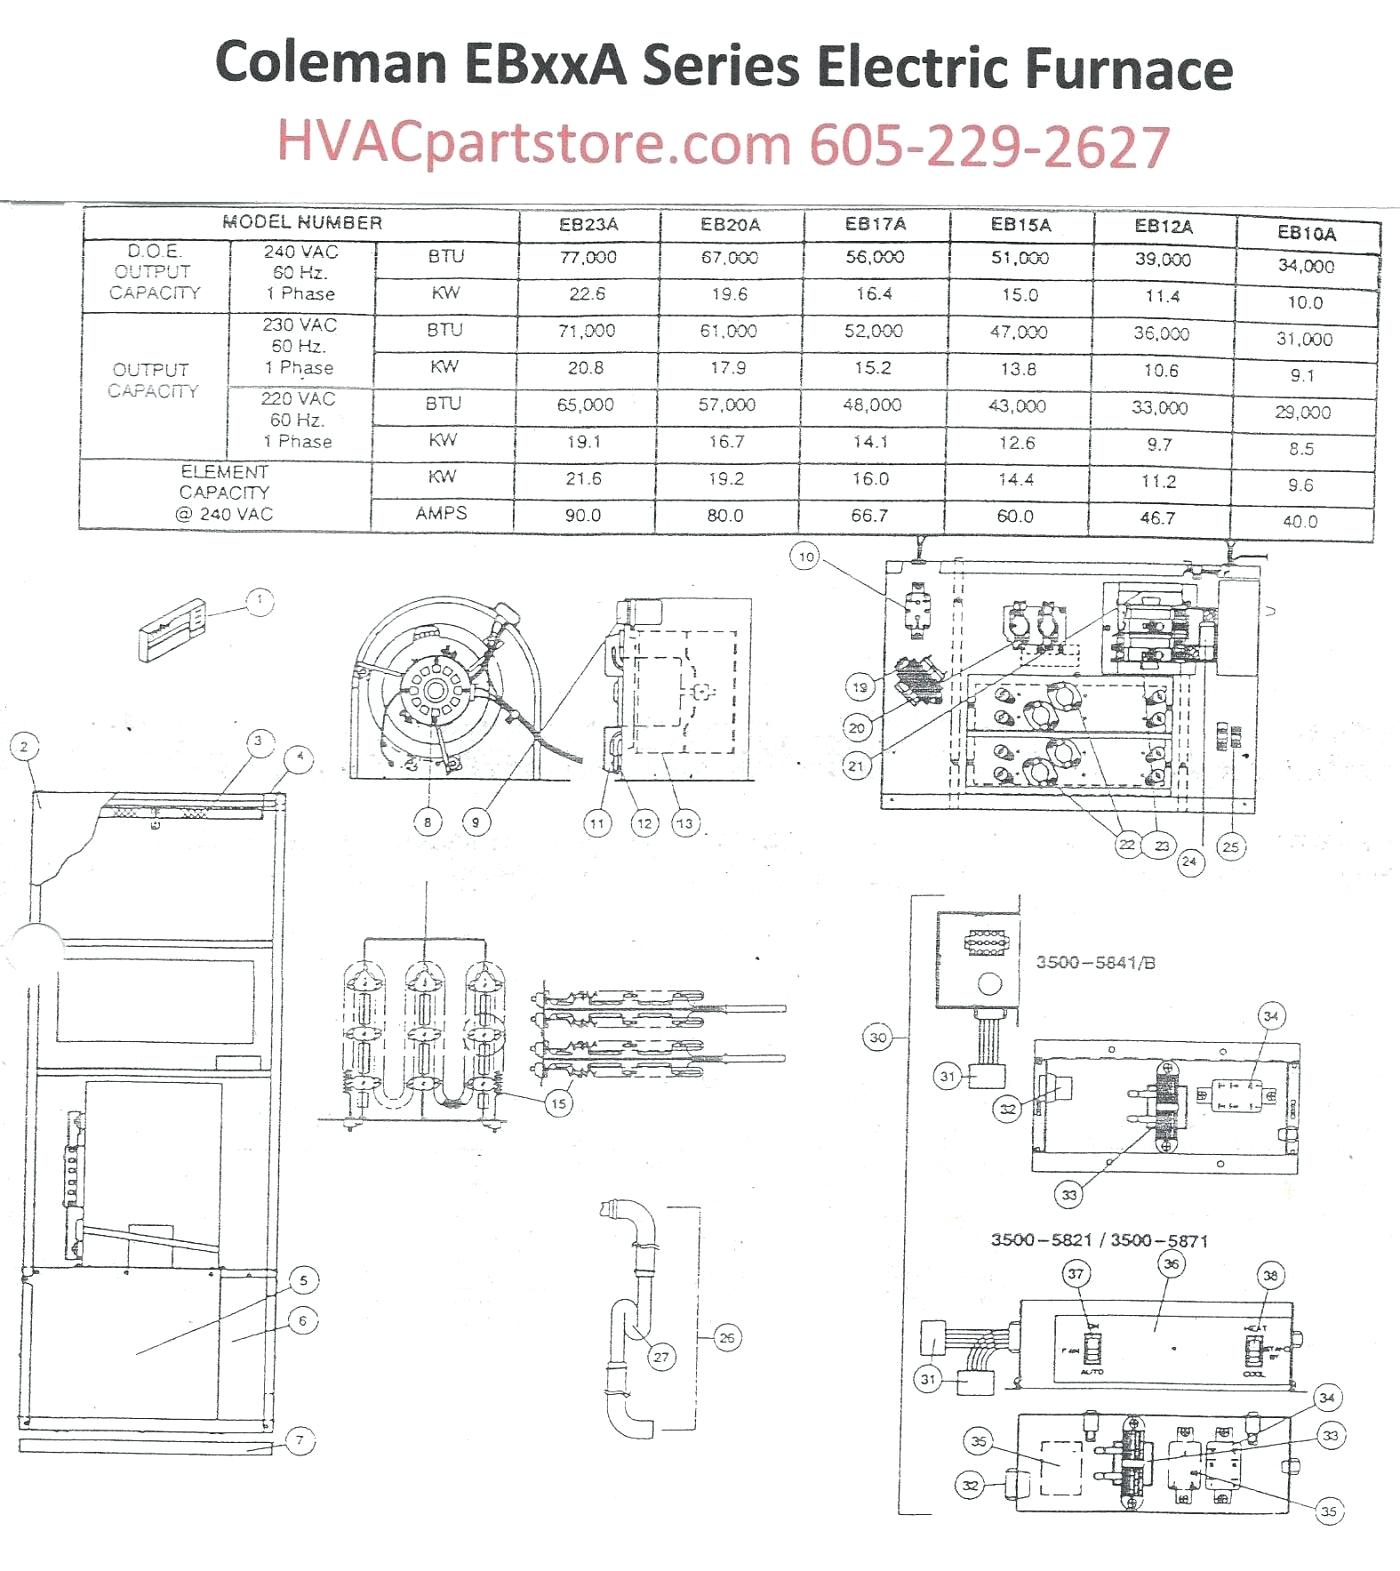 Forest River Battery Wiring Diagram | Wiring Diagram - Forest River Wiring Diagram